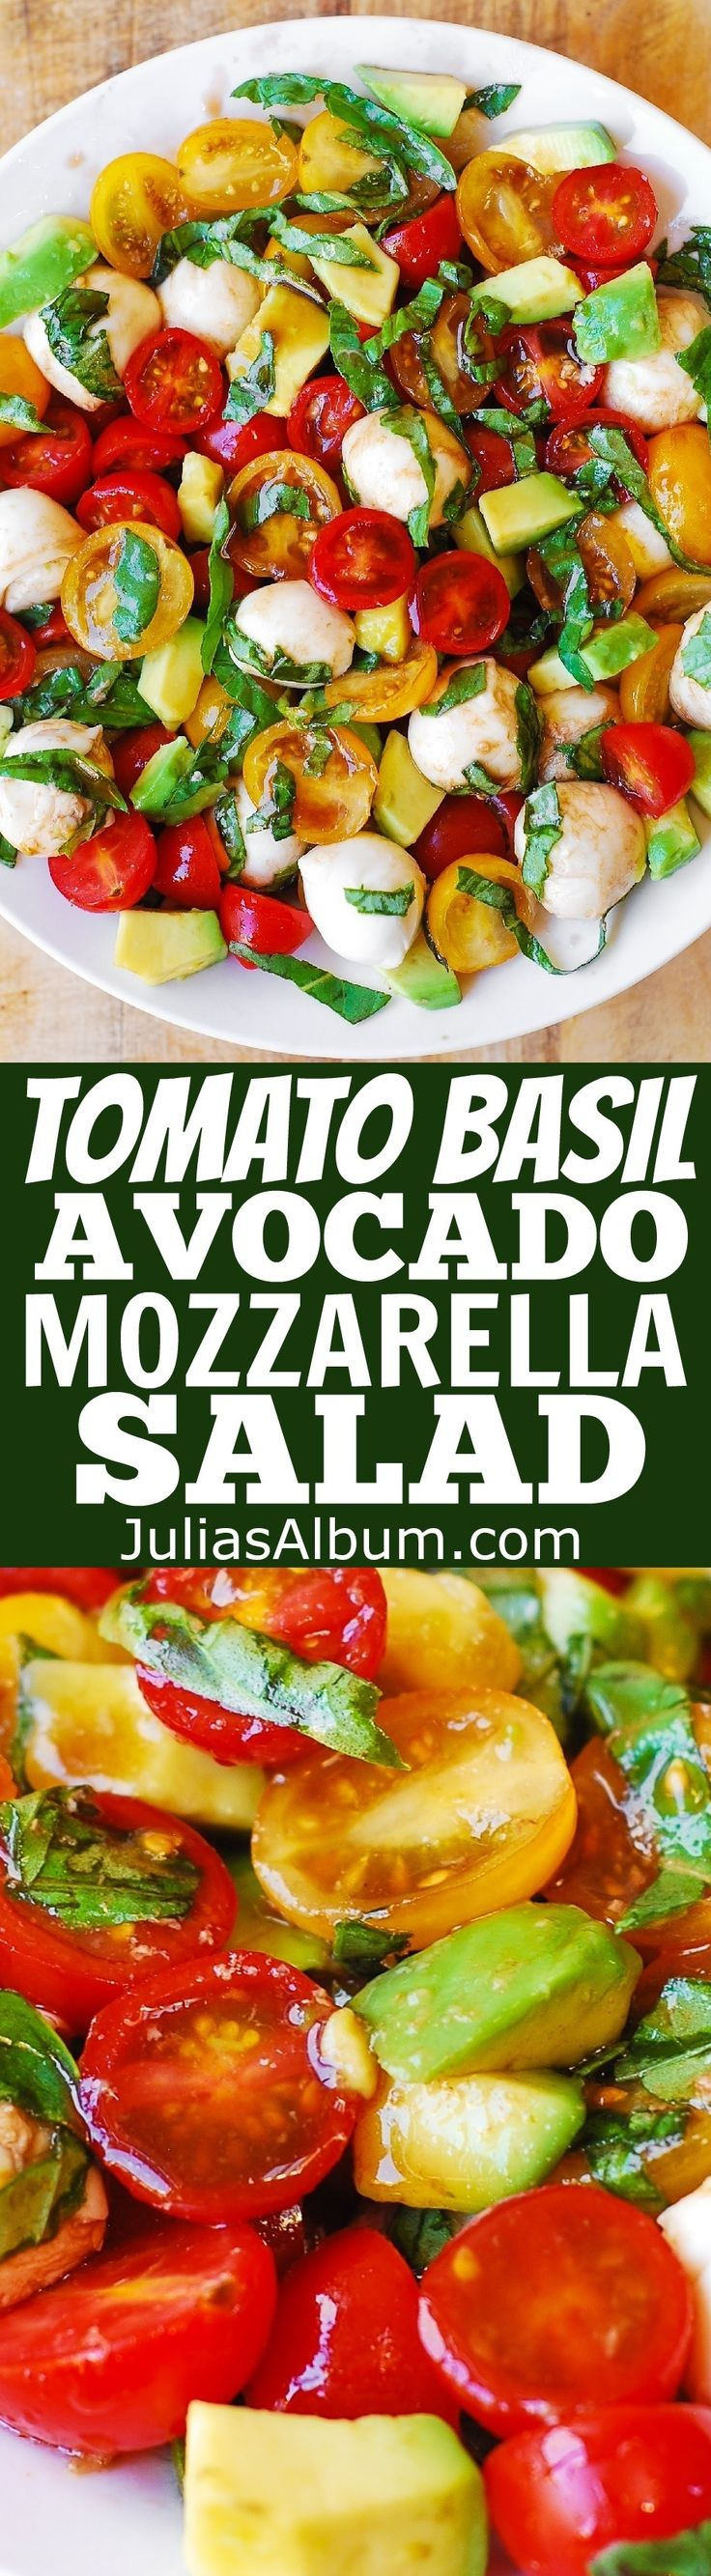 Tomato Basil Avocado Mozzarella Salad with Balsamic Dressing - #healthy #glutenfree #SUMMER